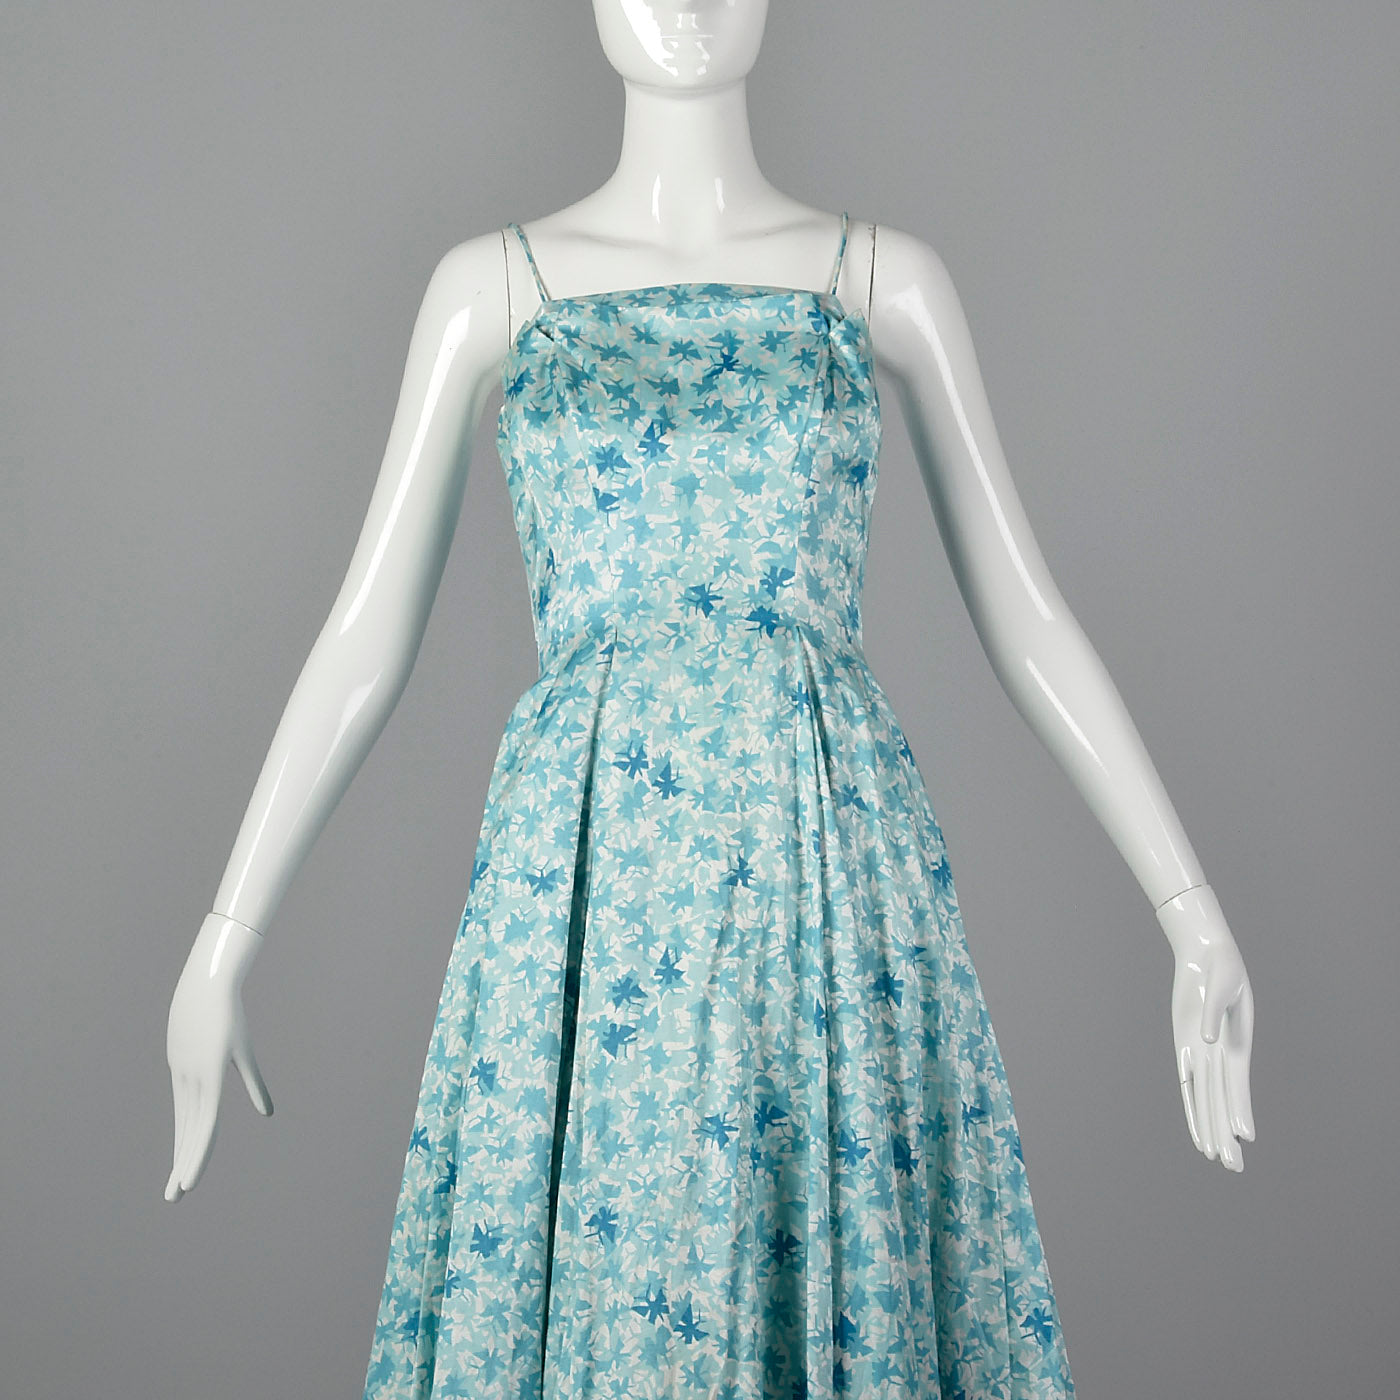 1950s Novelty Butterfly Print Dress